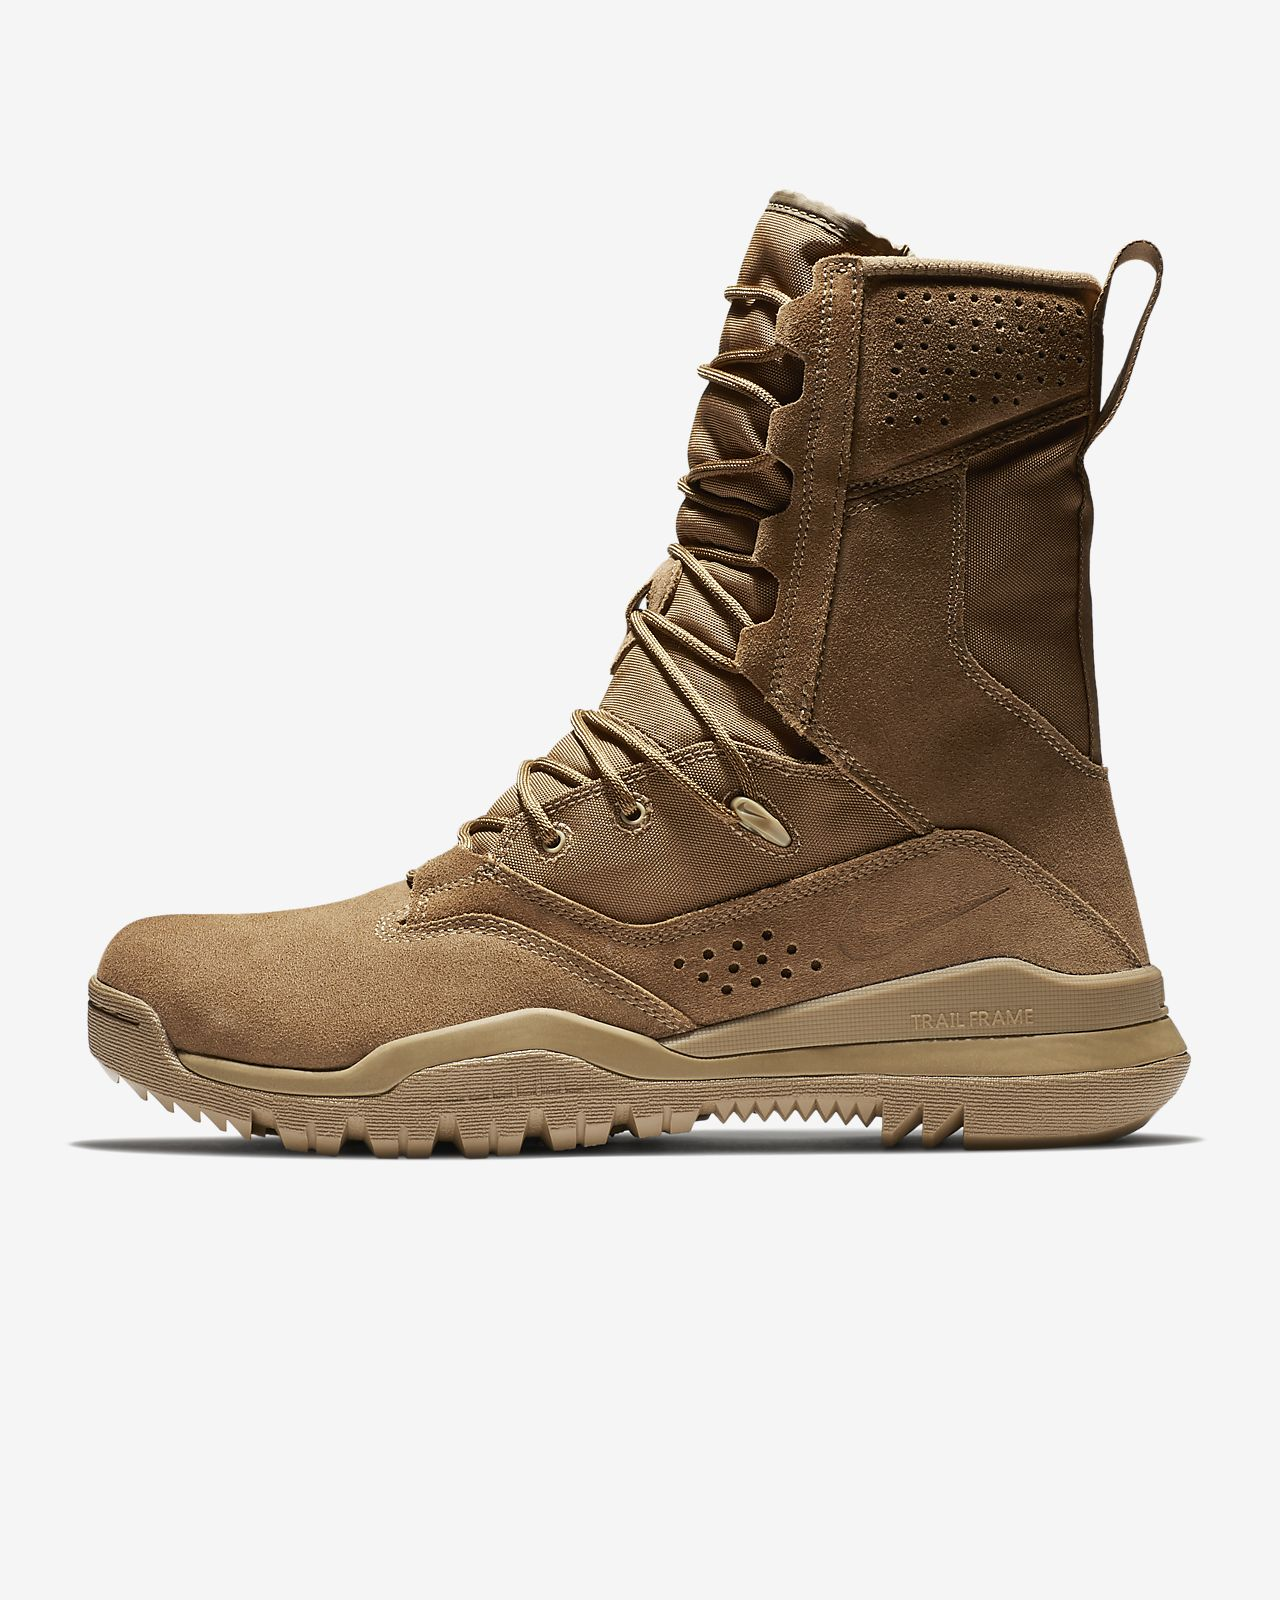 Nike SFB Field 2 20cm (approx.) Leather Tactical Boot